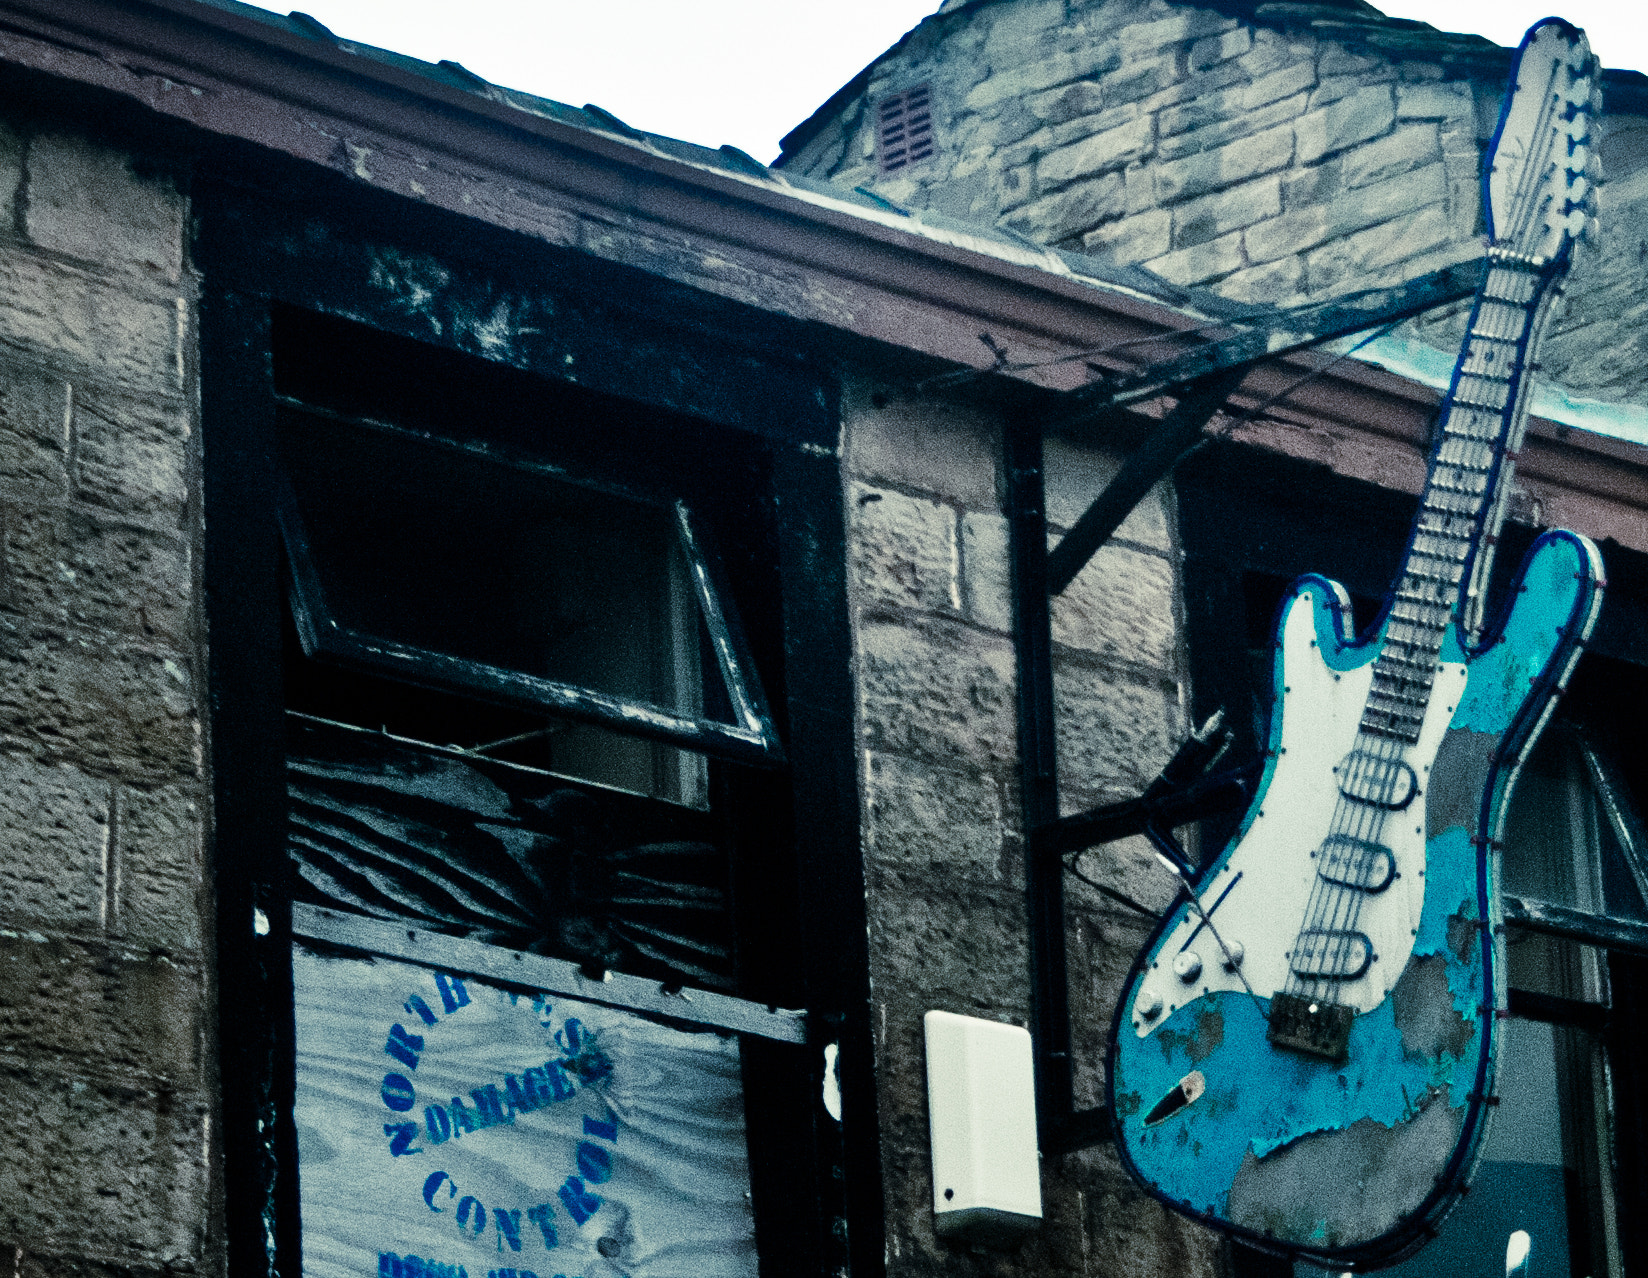 Photograph Music Store by Leanne Starkie on 500px